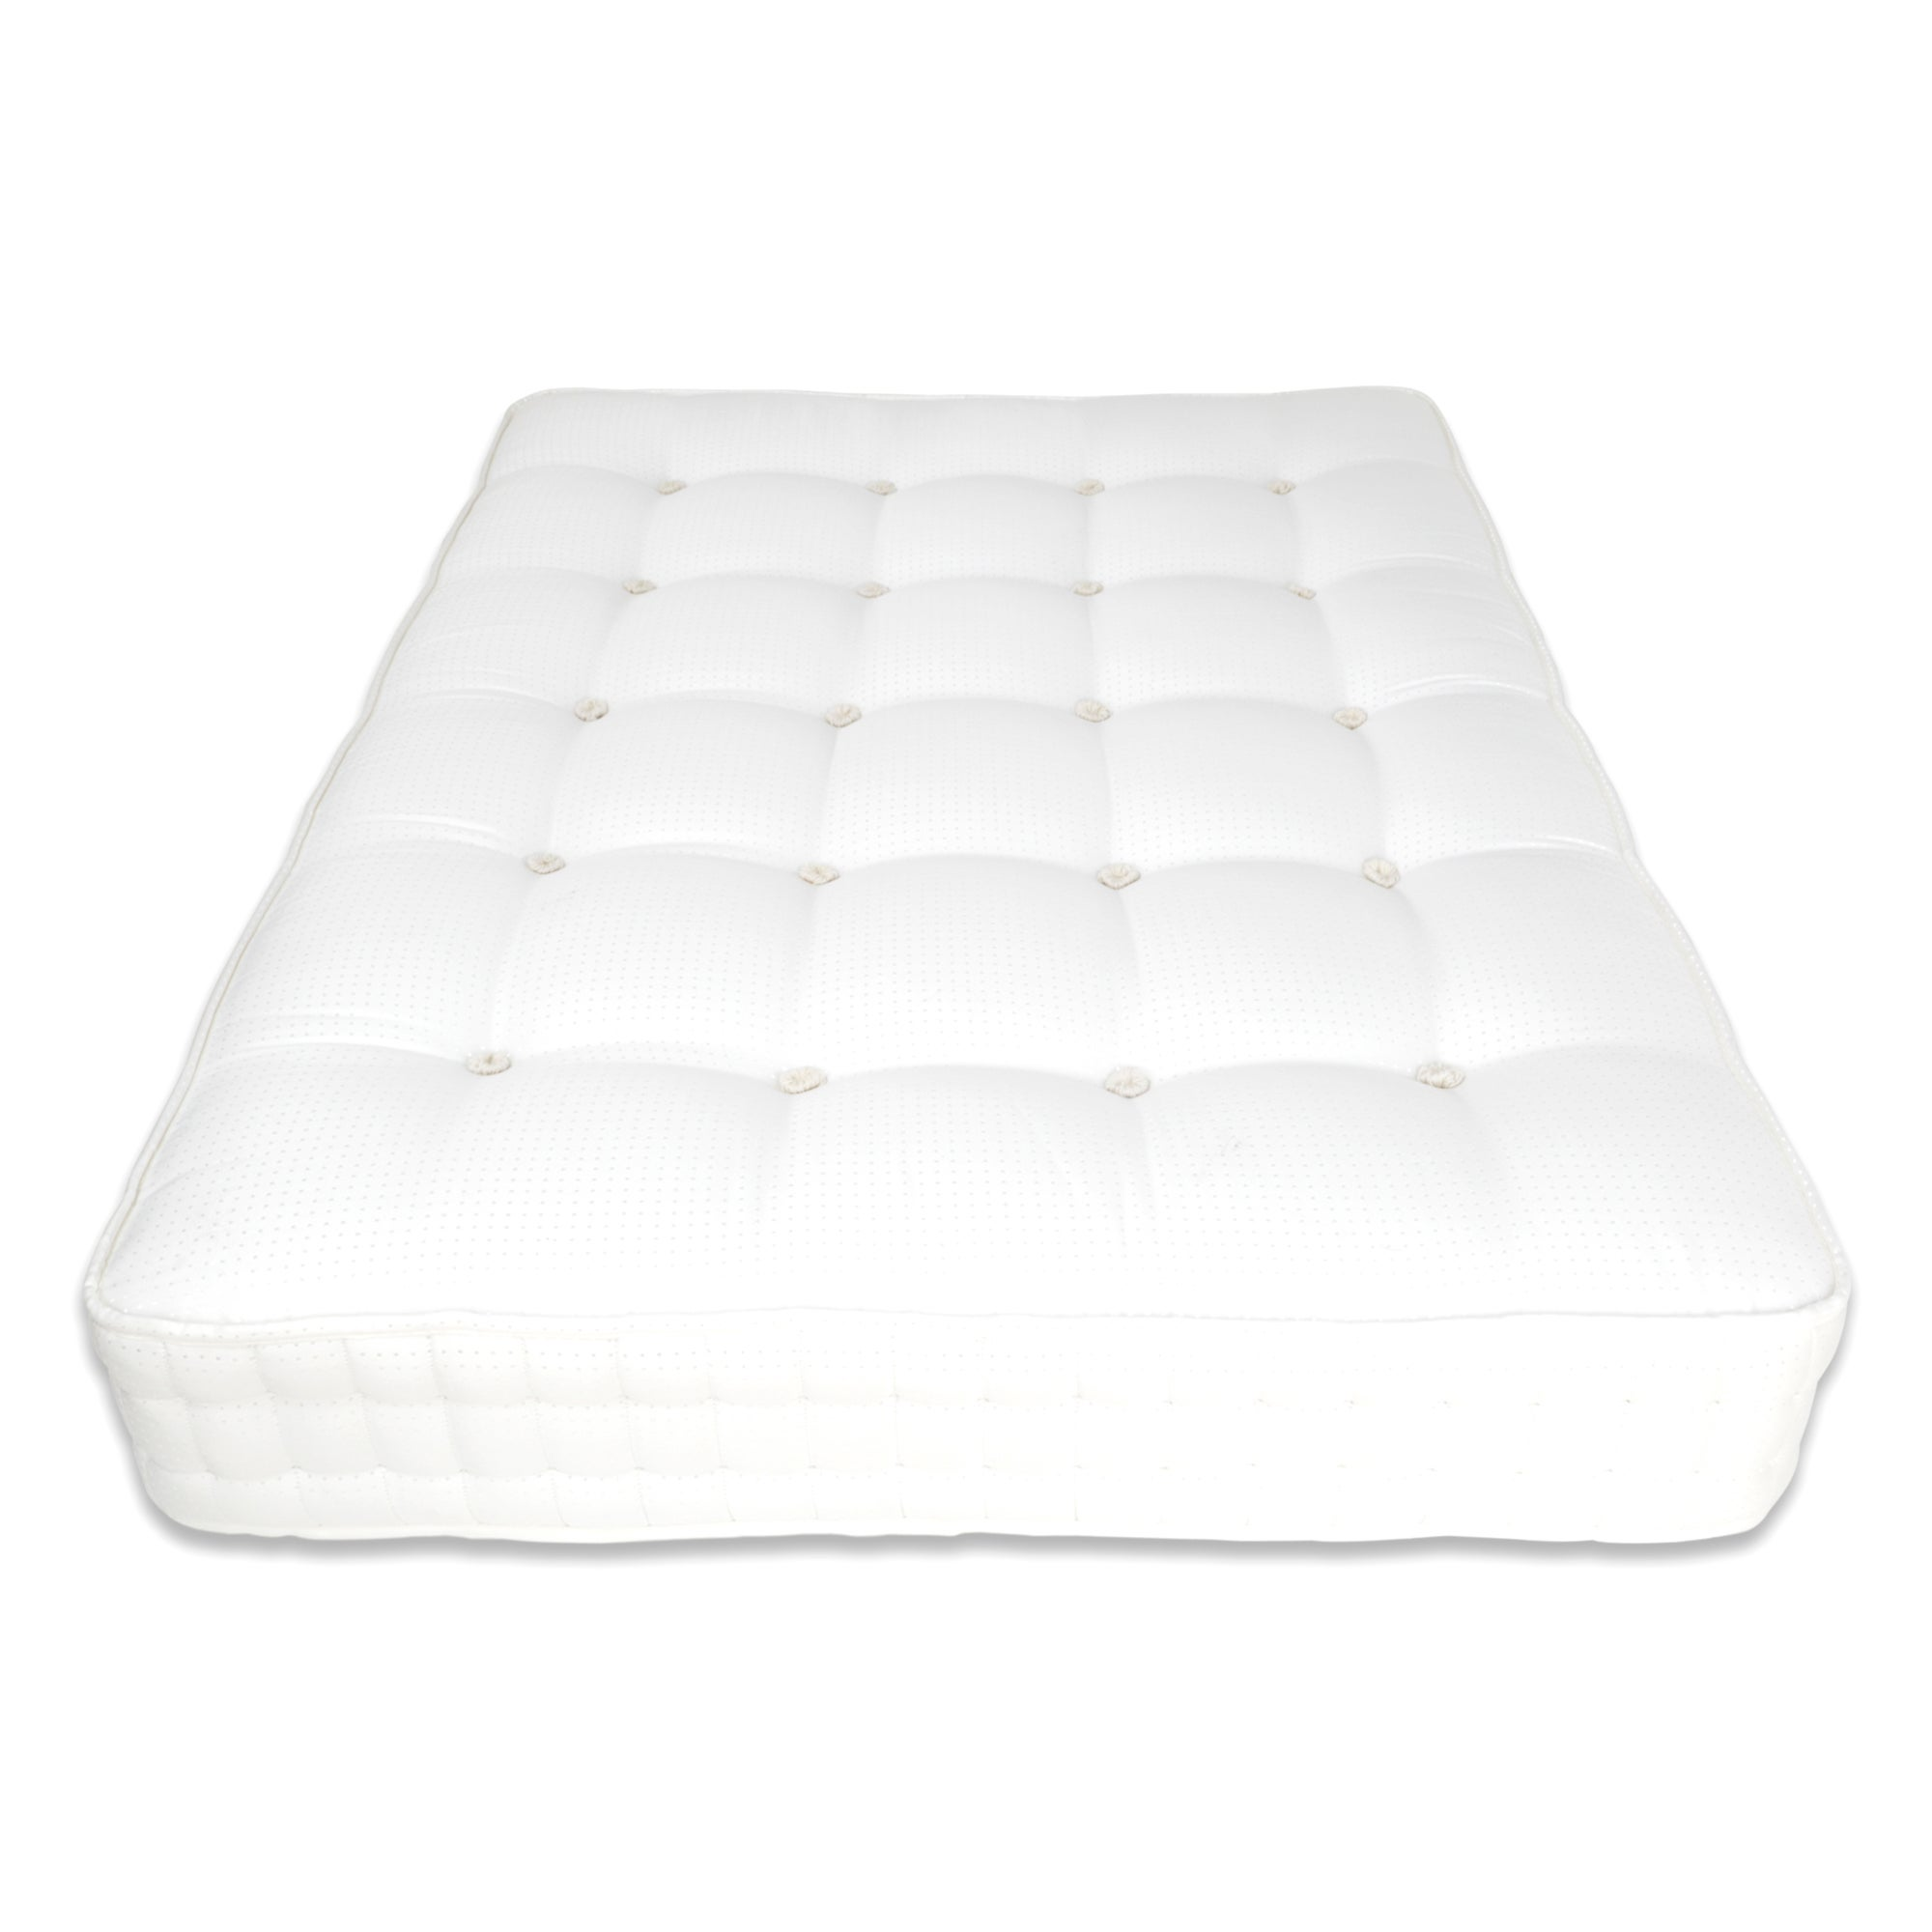 Carlisle Mattress